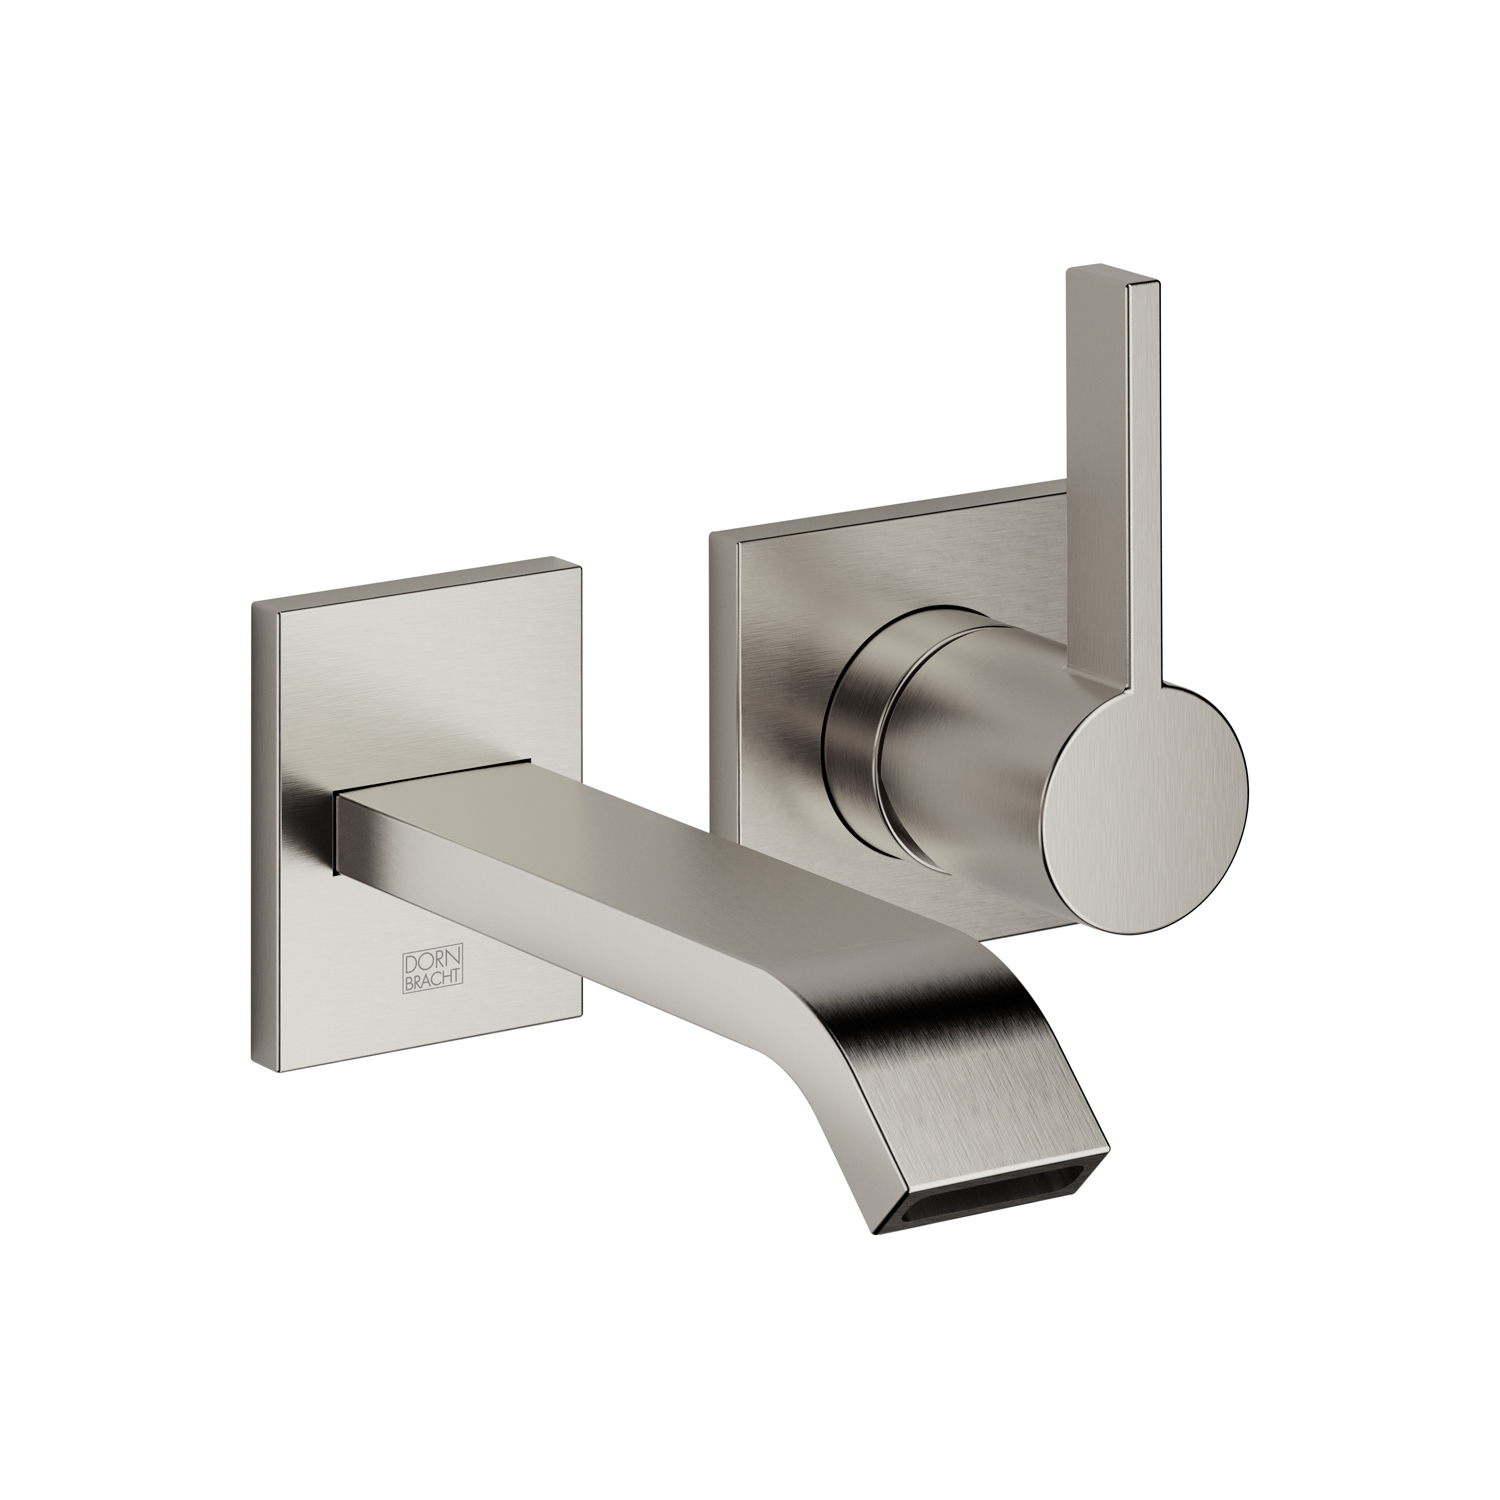 Dornbracht 36810670-060010 IMO Wall-Mounted Single-Lever Mixer without Drain - Platinum Matte